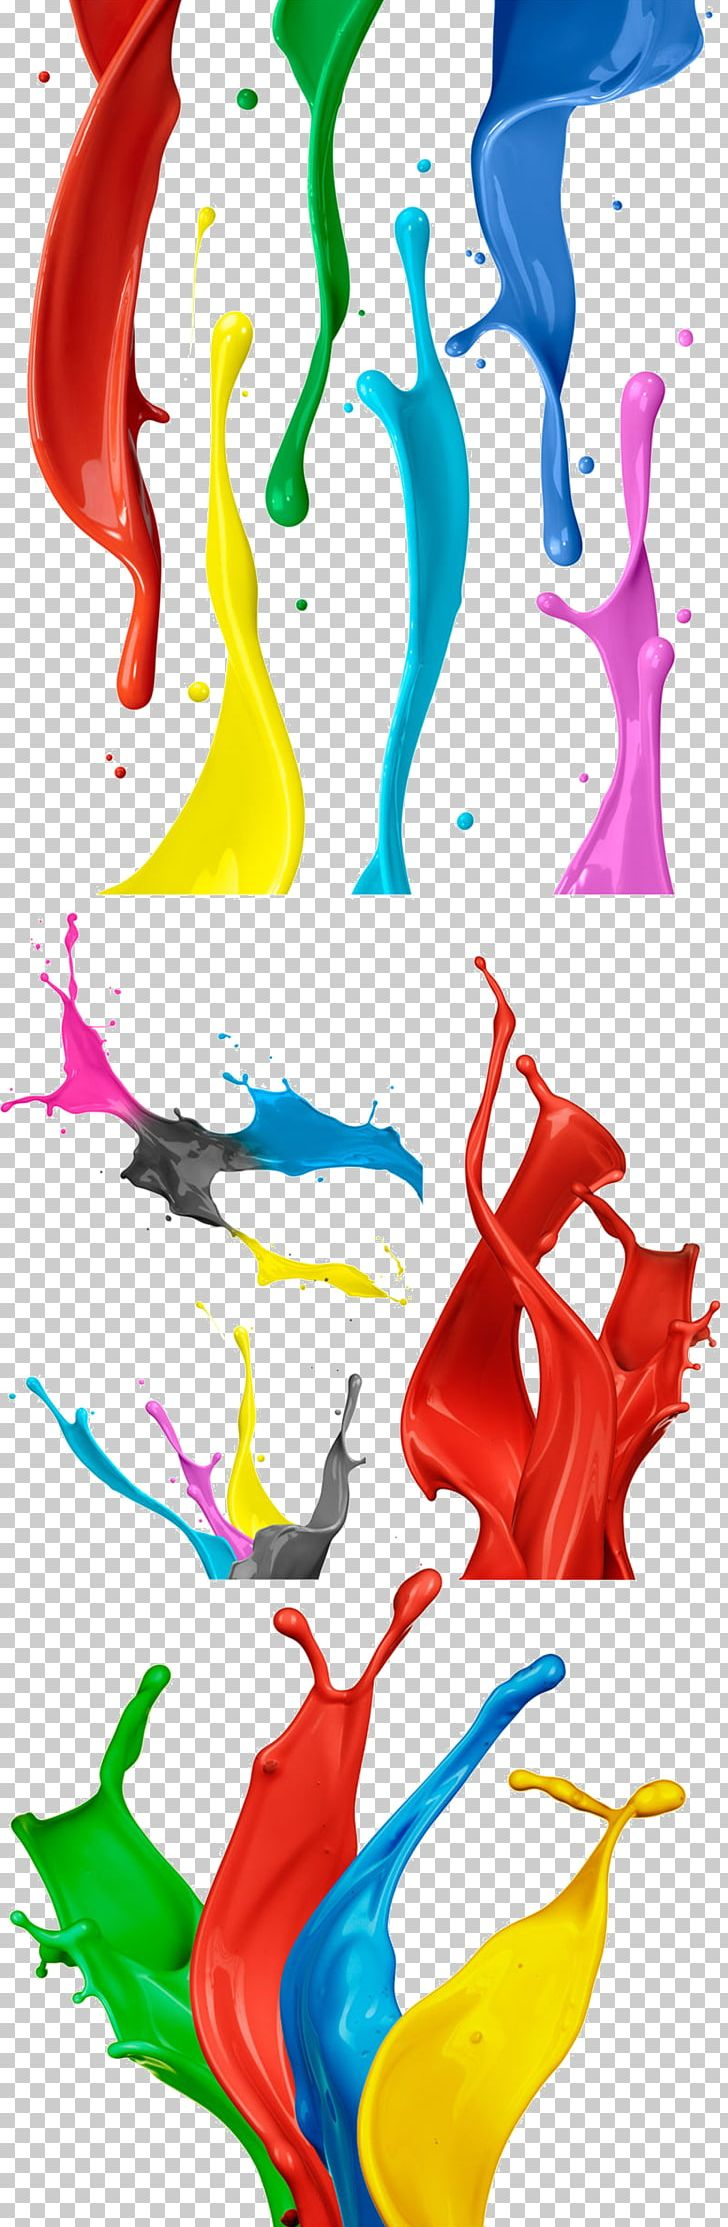 Watercolor Painting Watercolor Painting PNG, Clipart, 5 Kinds Of Color Paint Splashes, Art, Cmyk Color Model, Coating, Color Free PNG Download